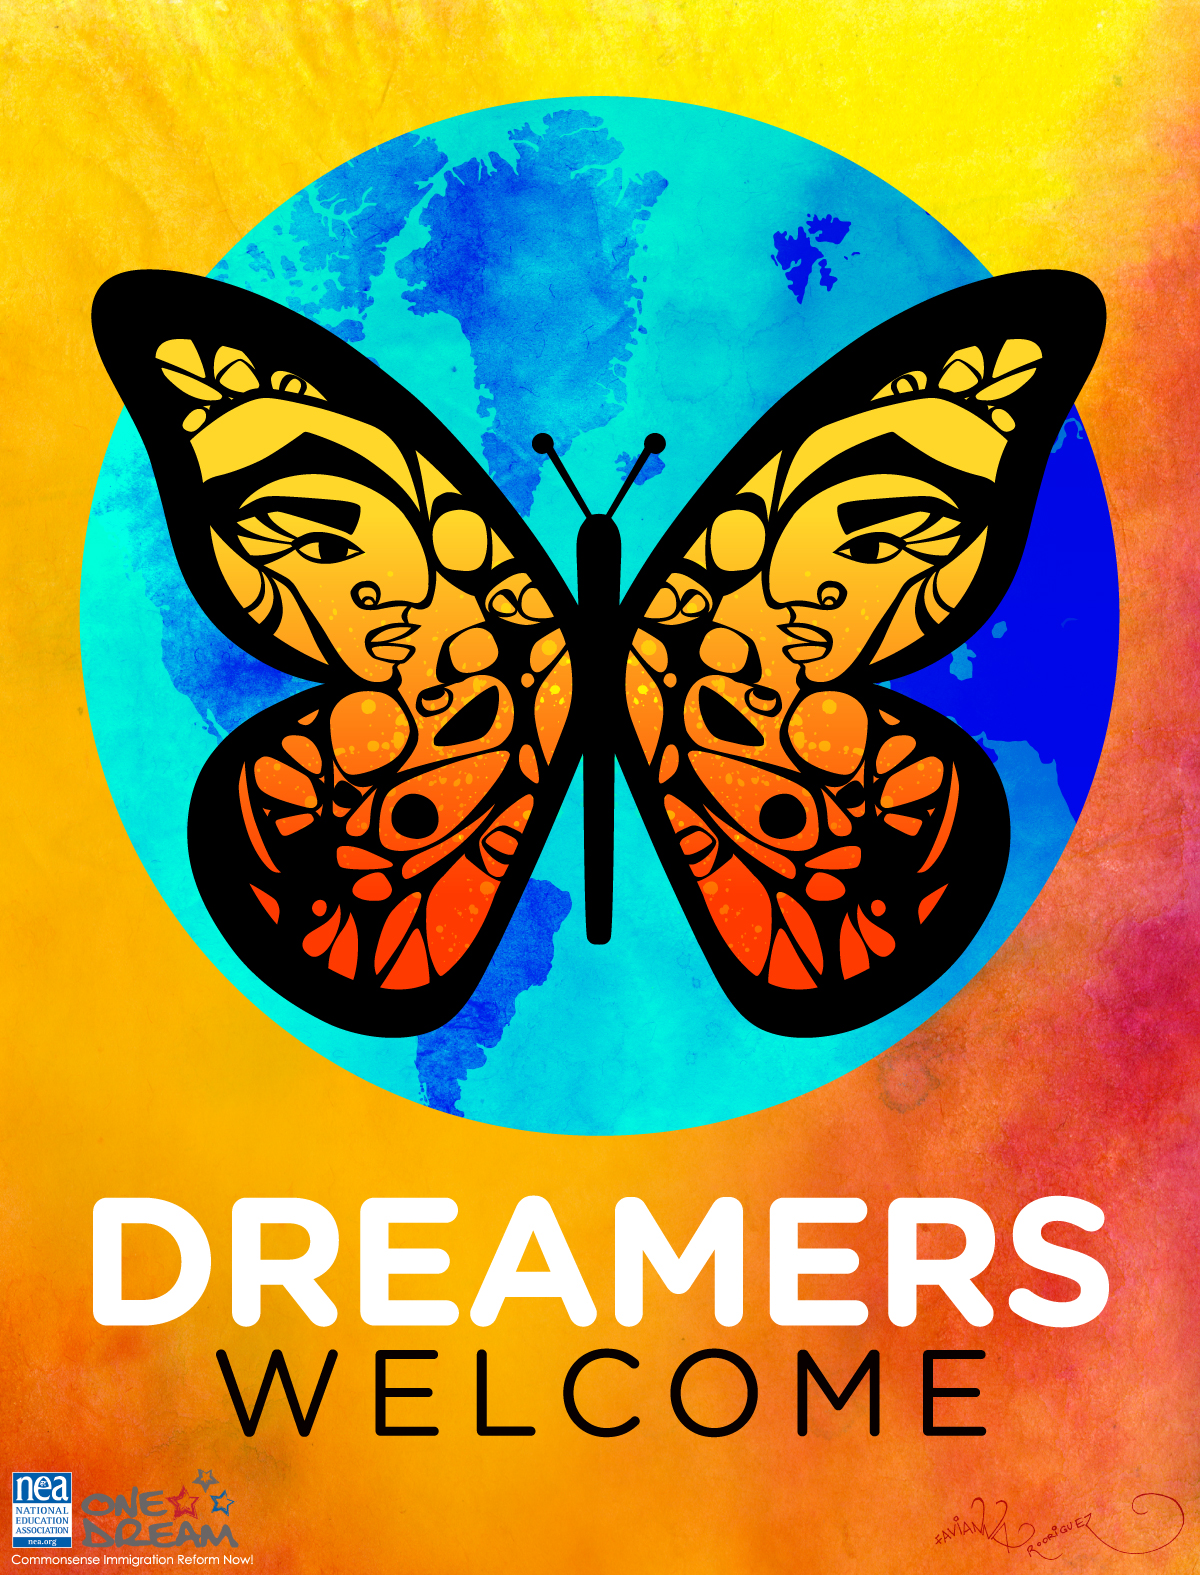 """Poster is a colorful butterfly with people's faces in the wings, covering the earth. Underneath it reads """"Dreamers Welcome."""" Image via  NEA.org"""